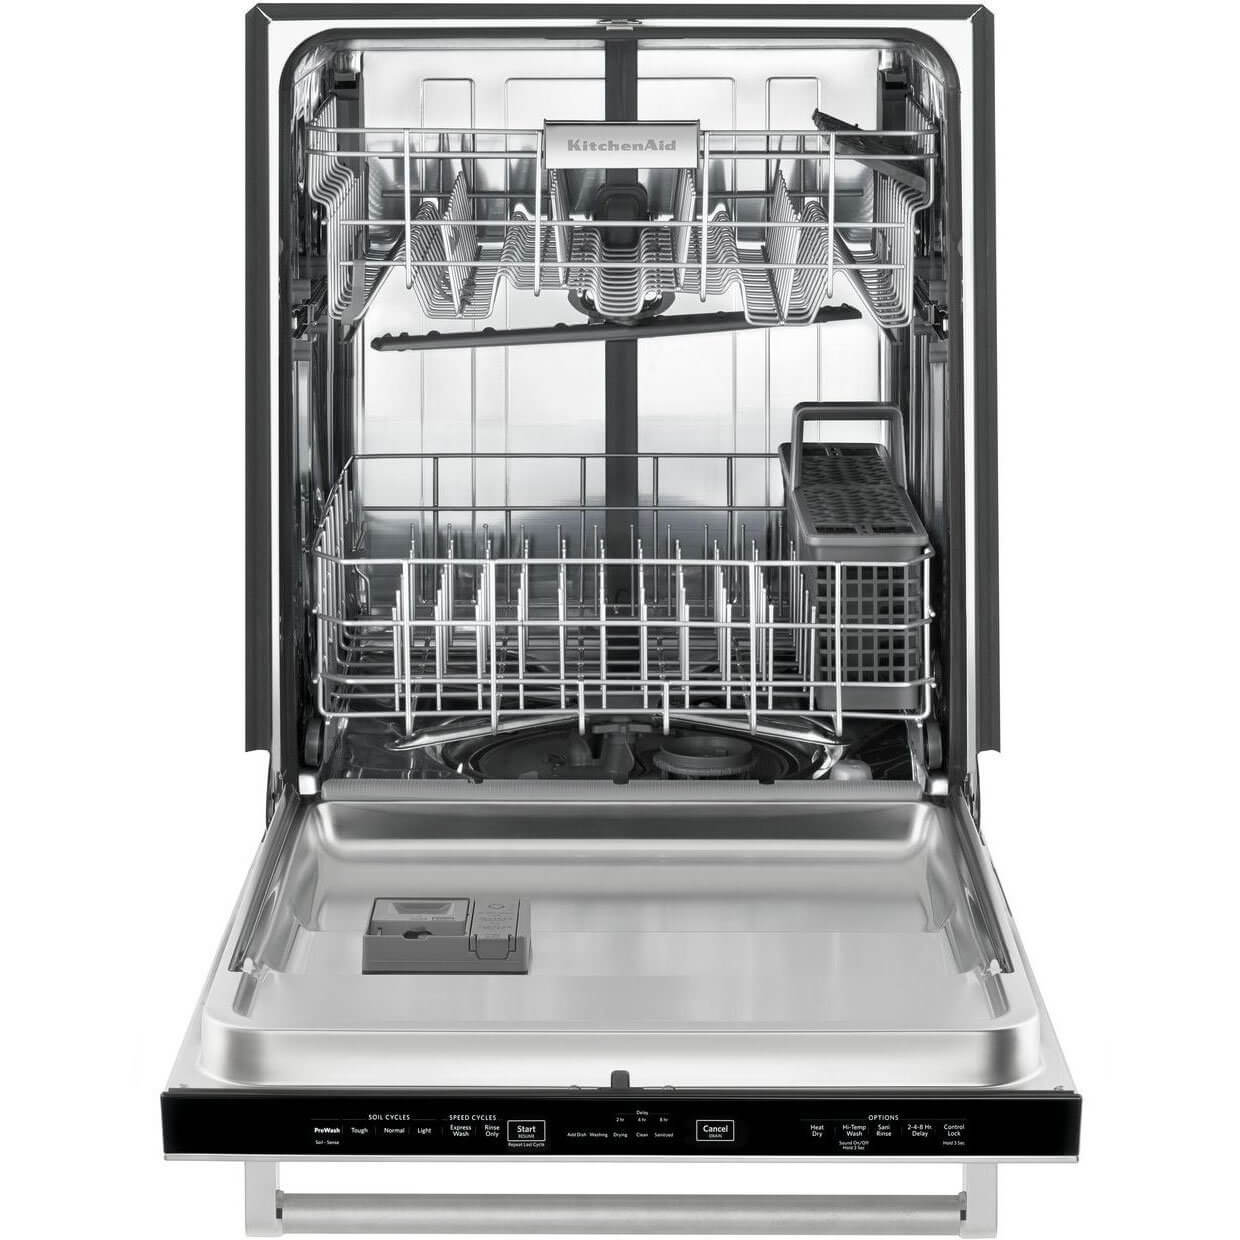 kitchenaid kitchen model aid dishwasher